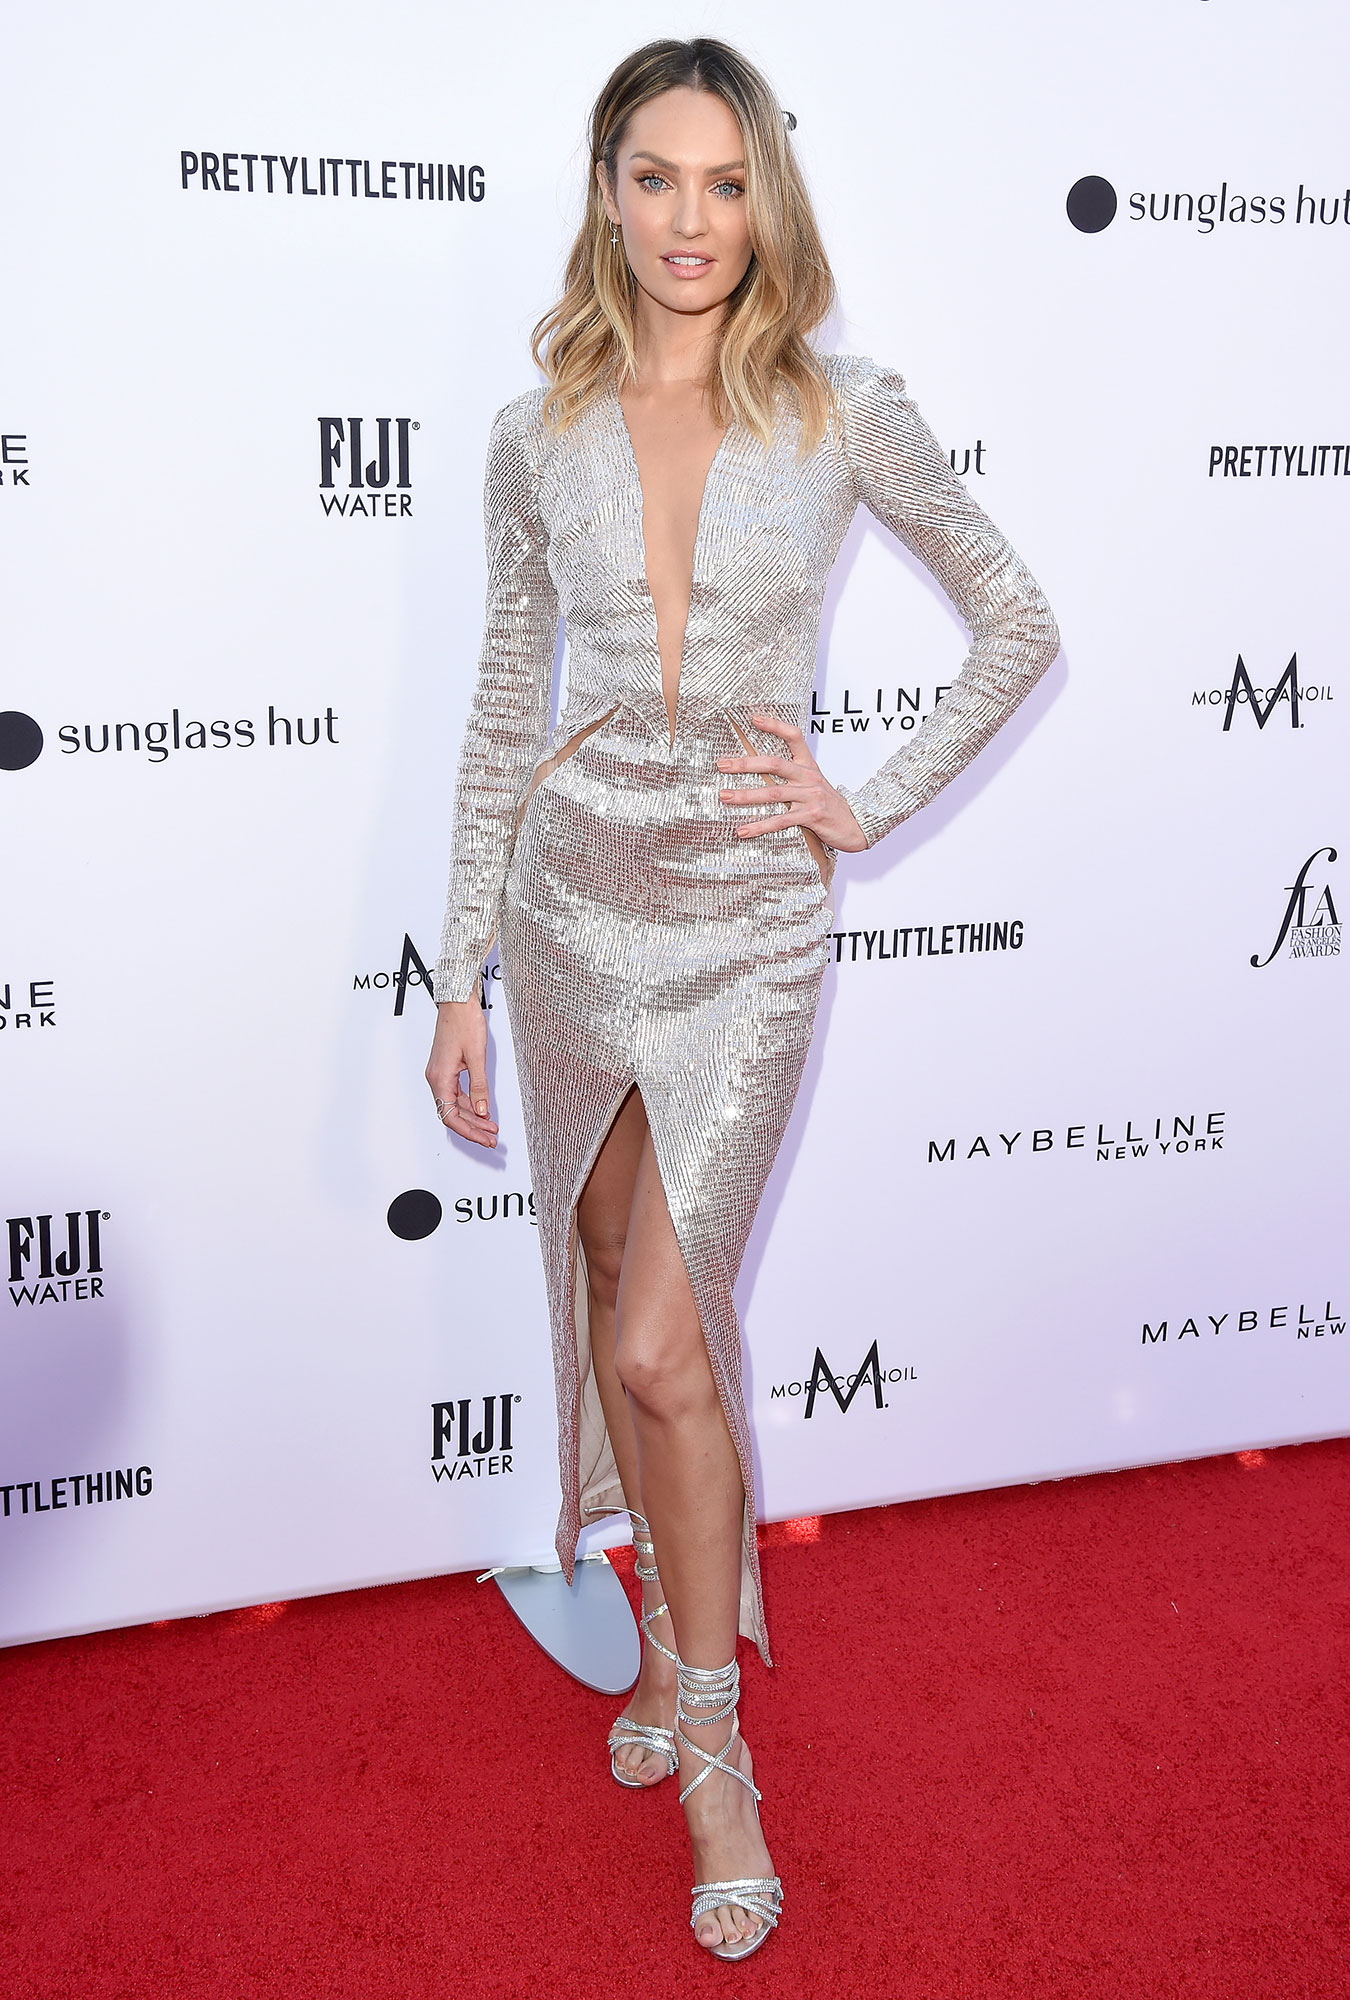 Stars Brought Their Style A-Game to the Daily Front Row Fashion Awards - The blonde beauty looked absolutely gorgeous in a shimmery silver dress with a slit up the middle and matching strappy heels.